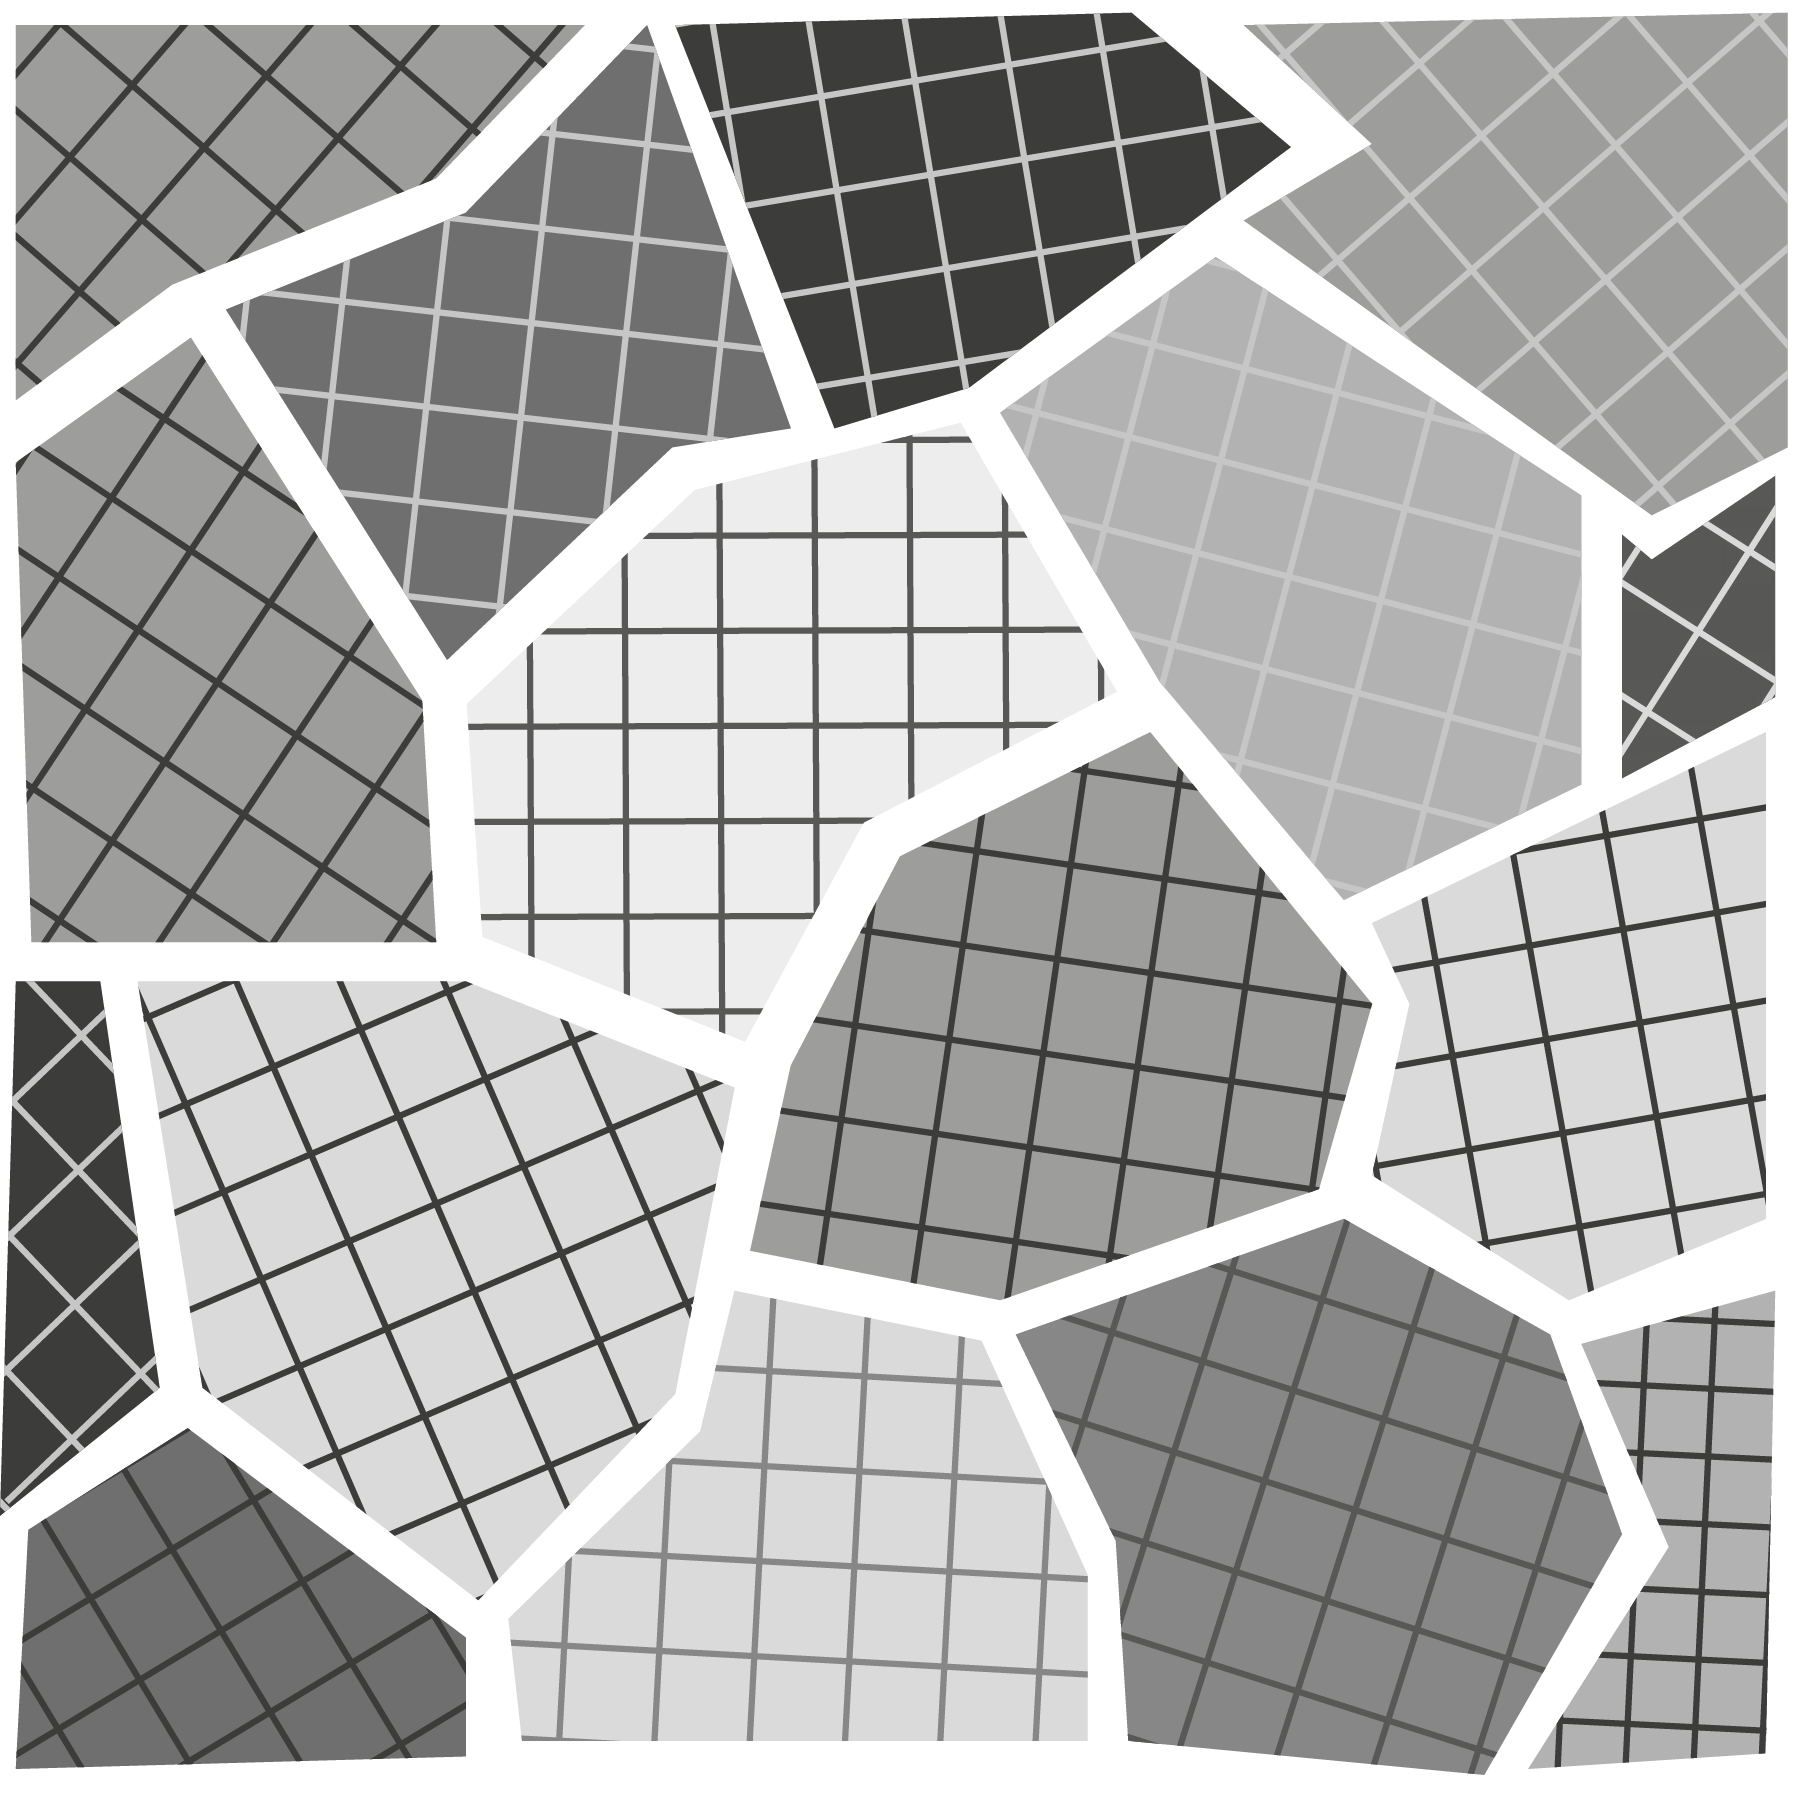 Above is an artistic representation of the atomic structure of steel. The white spaces at the borders of these grains are called grain boundaries.